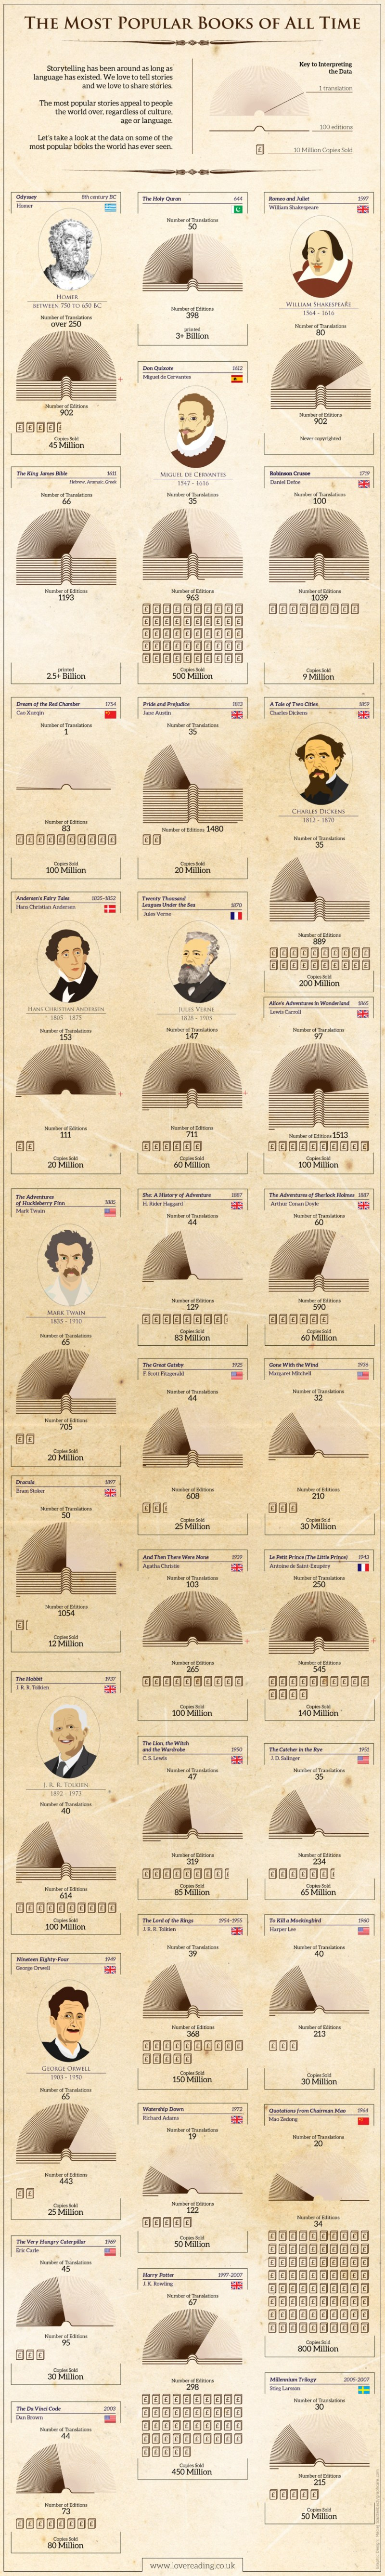 Infographic - The Most Popular Books Of All Time